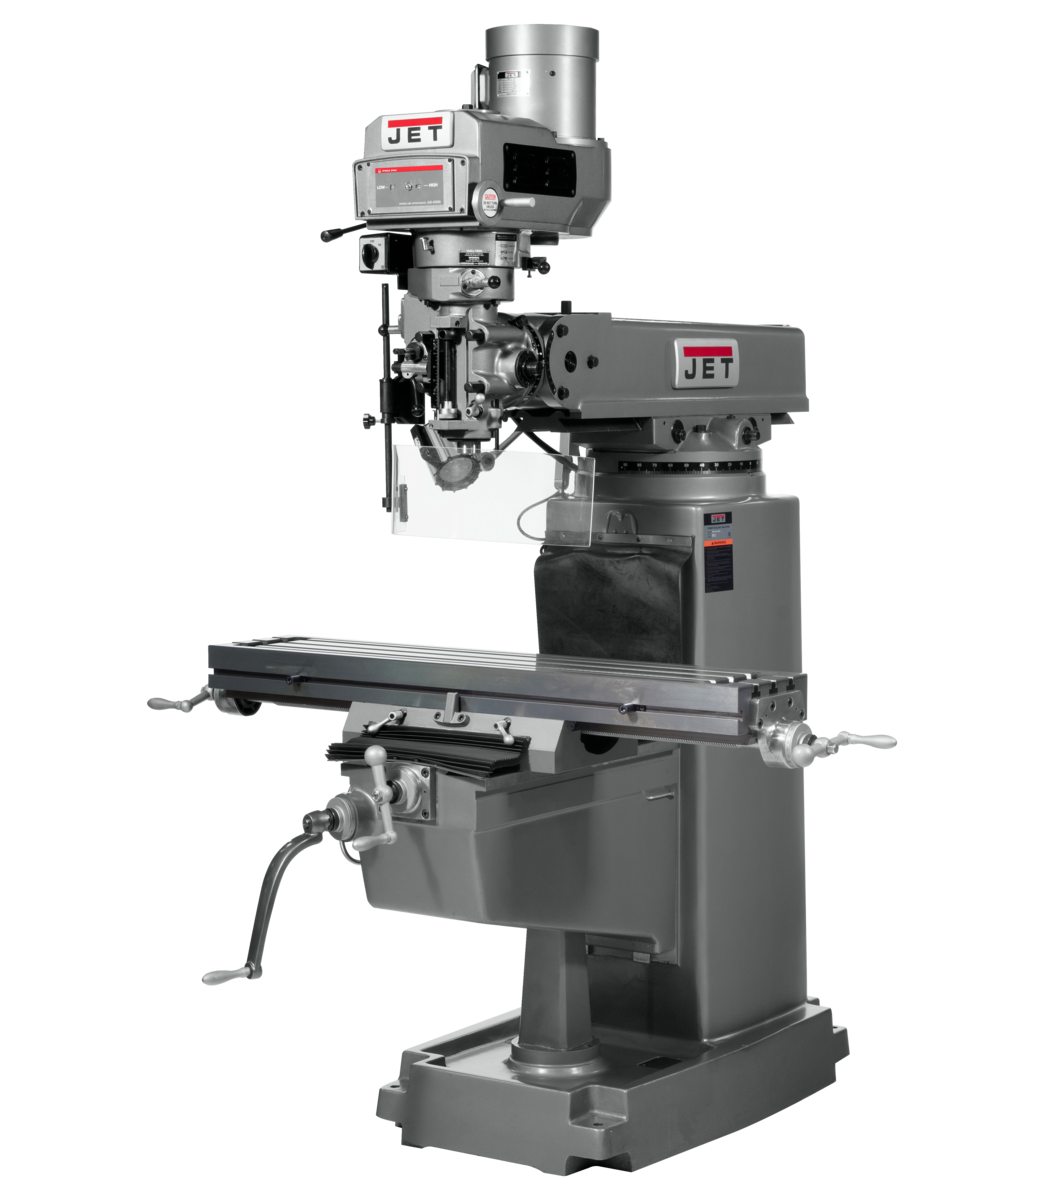 JTM-1050VS2 Mill With 3-Axis Newall DP700 DRO (Quill) With X-Axis Powerfeed